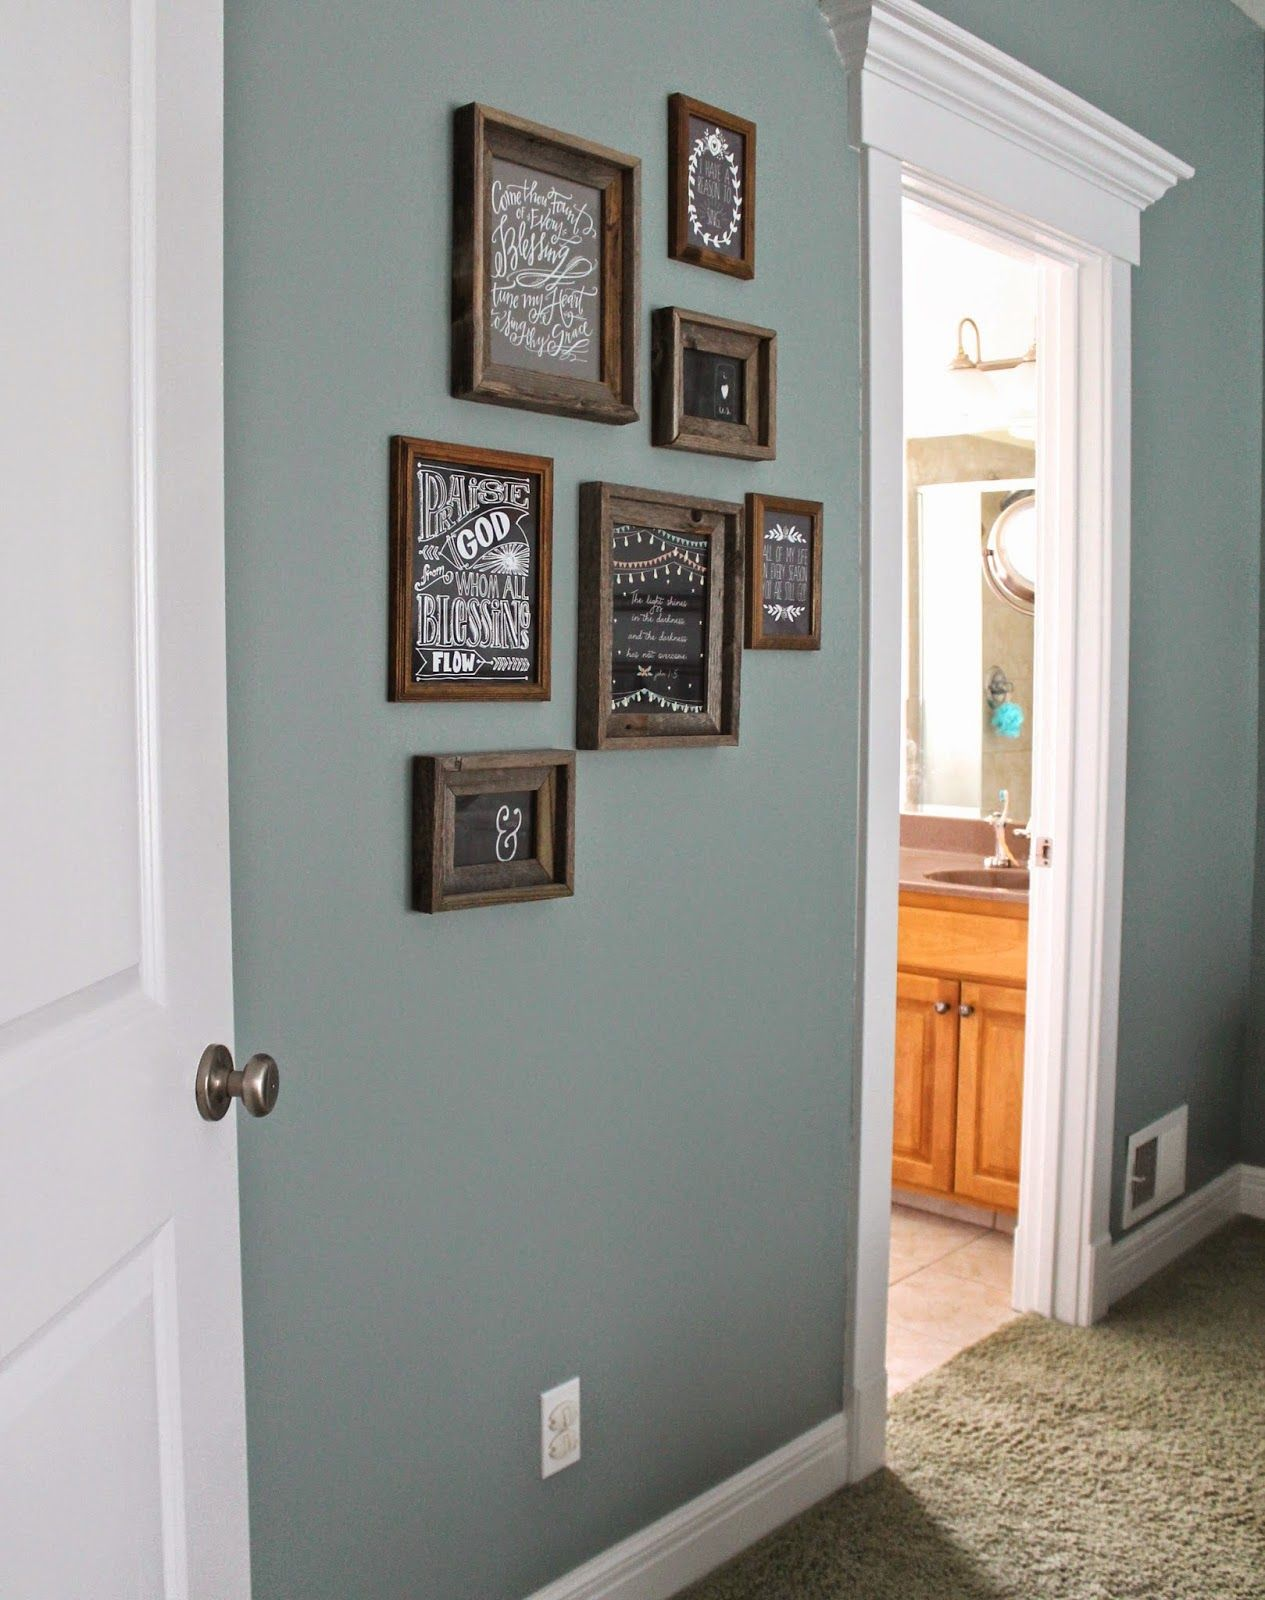 Paint Color Valspar Blue Arrow Dark Rustic Frames Hobby